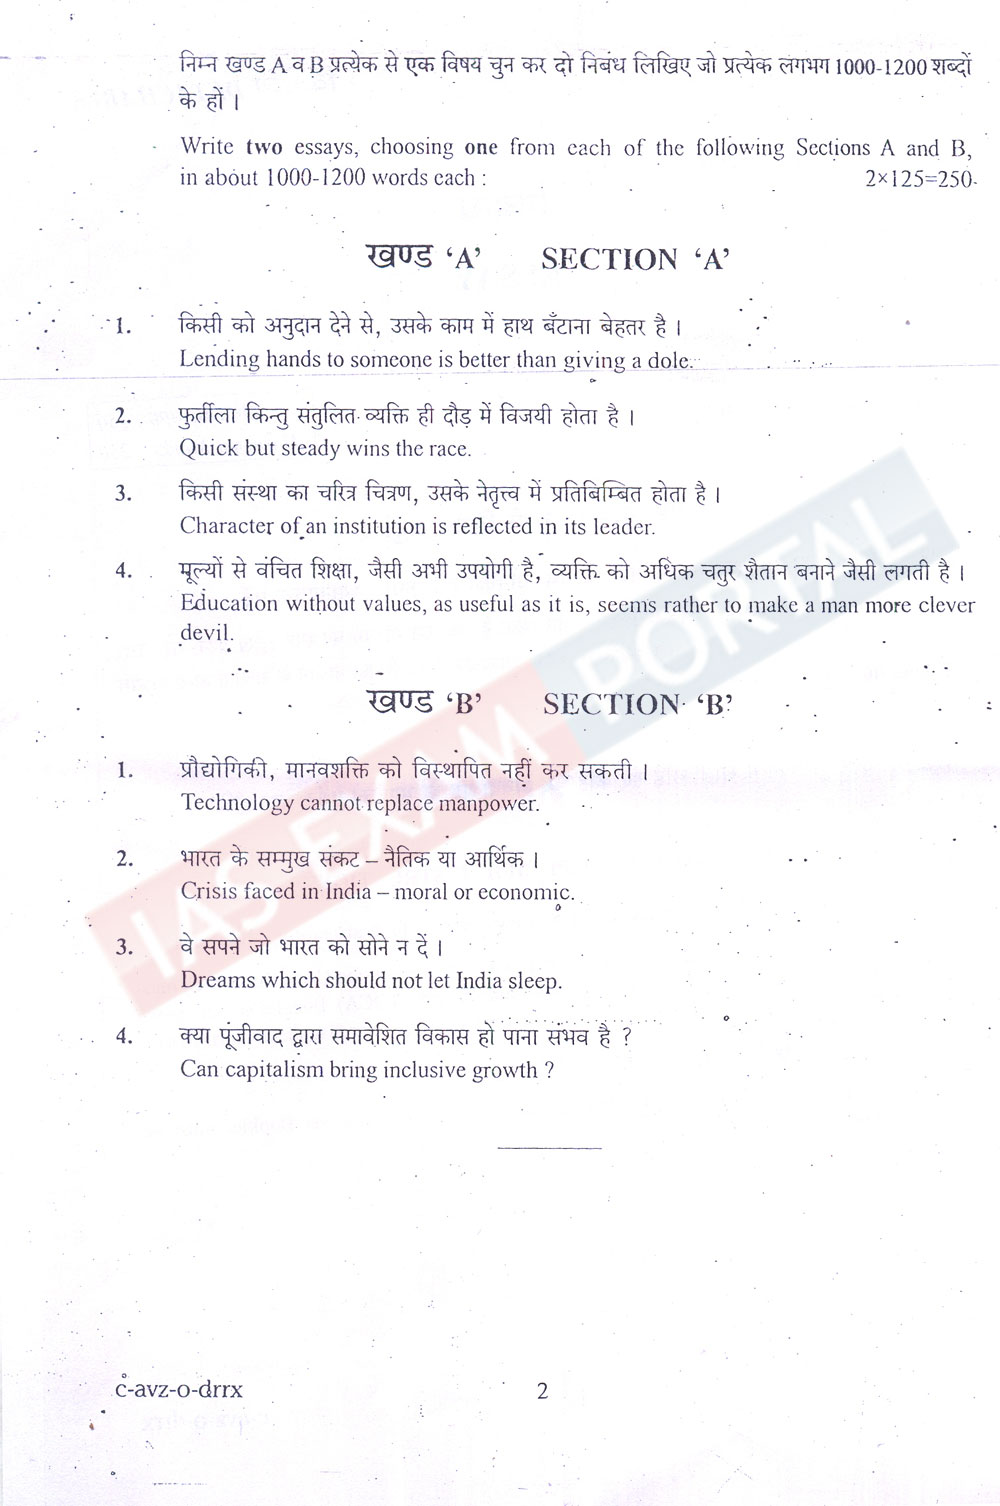 upsc ias mains essay compulsory question paper section b